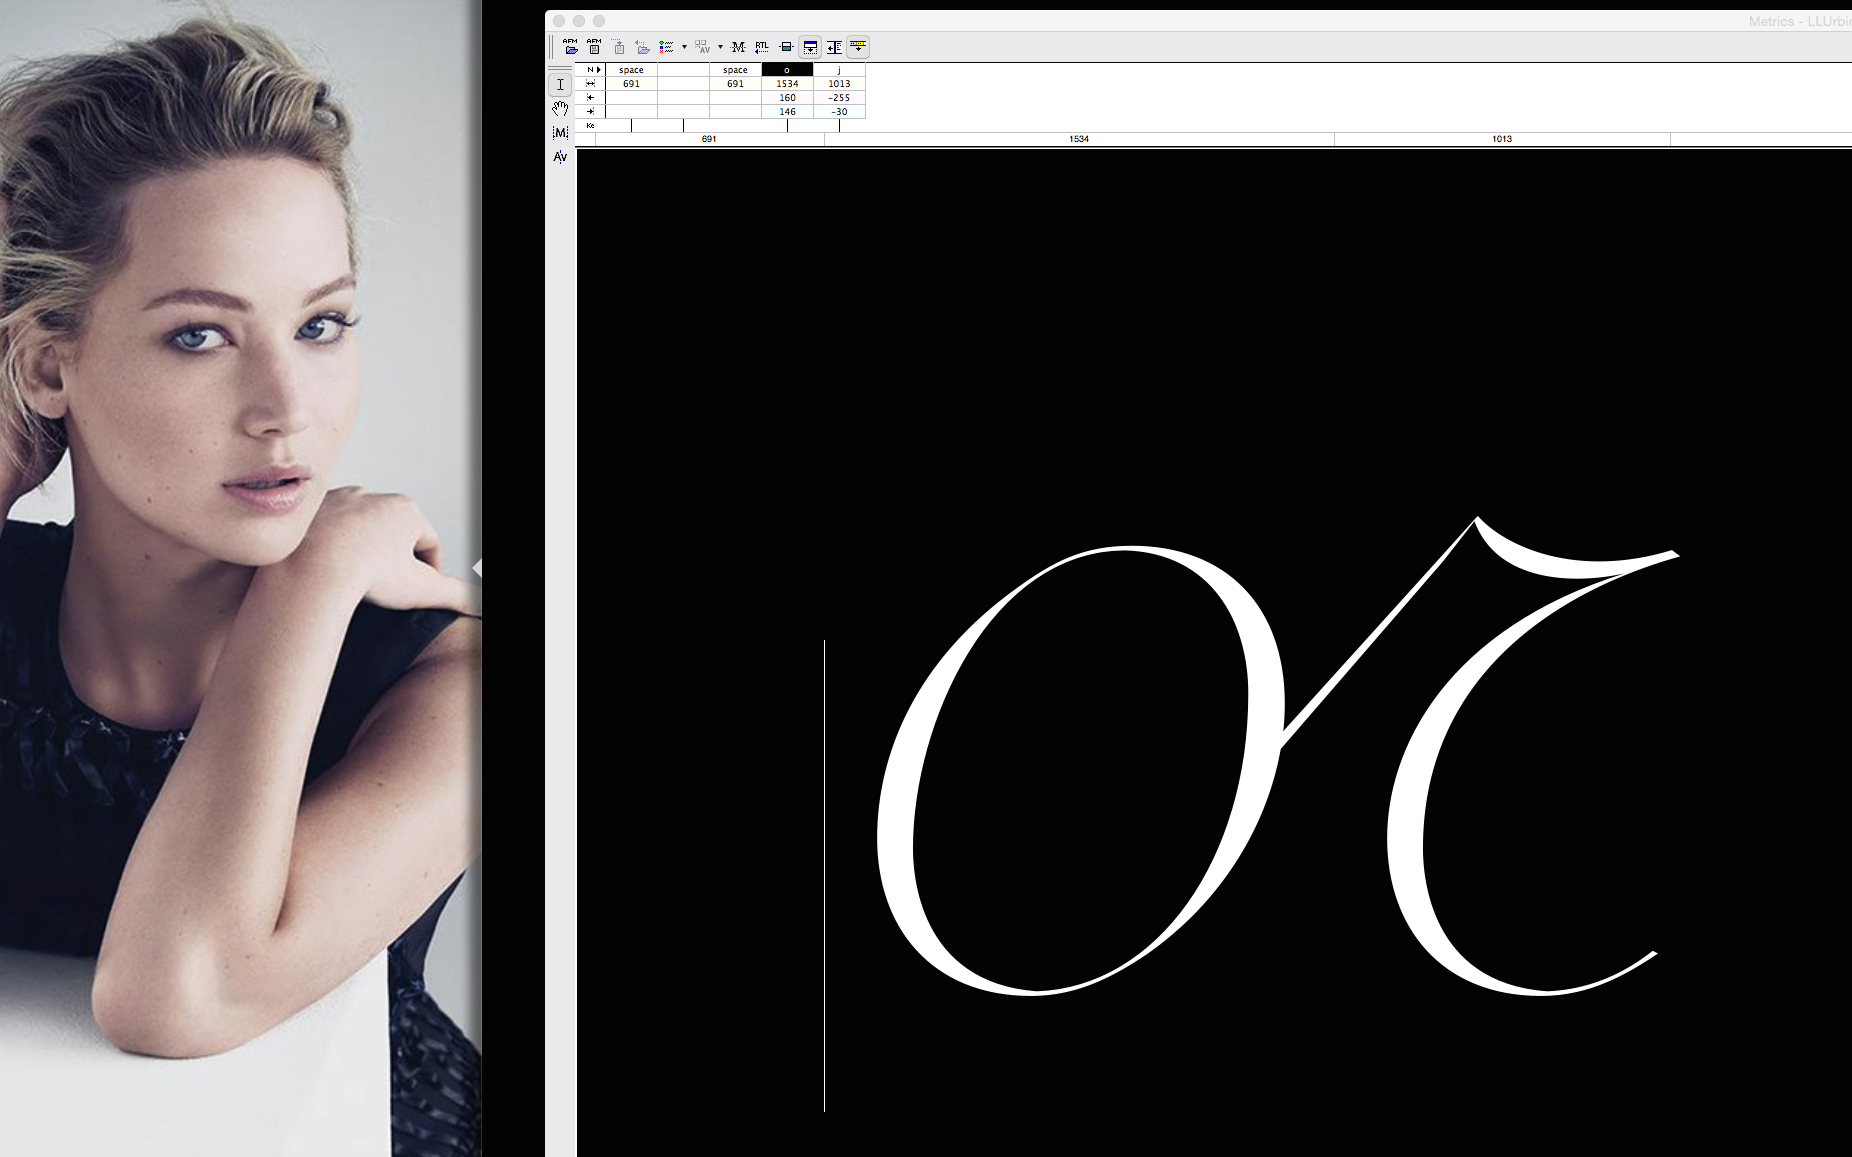 Letter Spaces Testing for Screen Design: Dior Microsite (Personal Work)